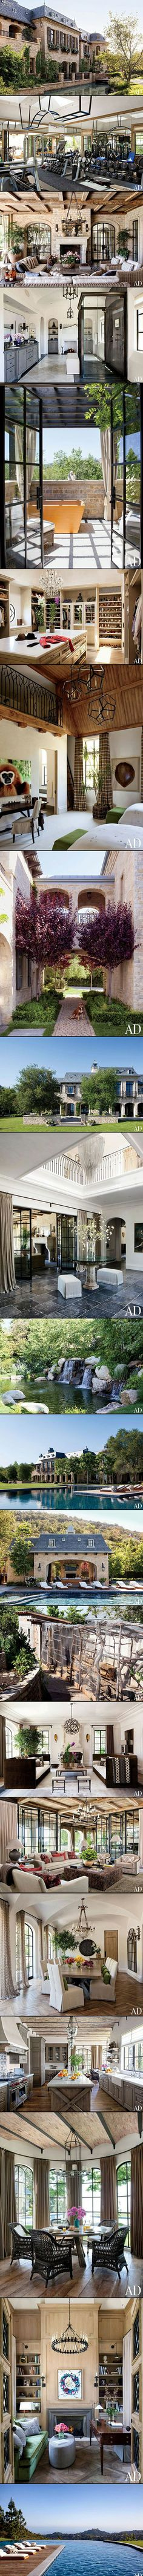 Newly minted billionaire Dre - thanks to the Beats acquisition by Apple - has made an offer near the $50 million asking price for Gisele Bundchen and Tom Brady's palatial pad in Brentwood.